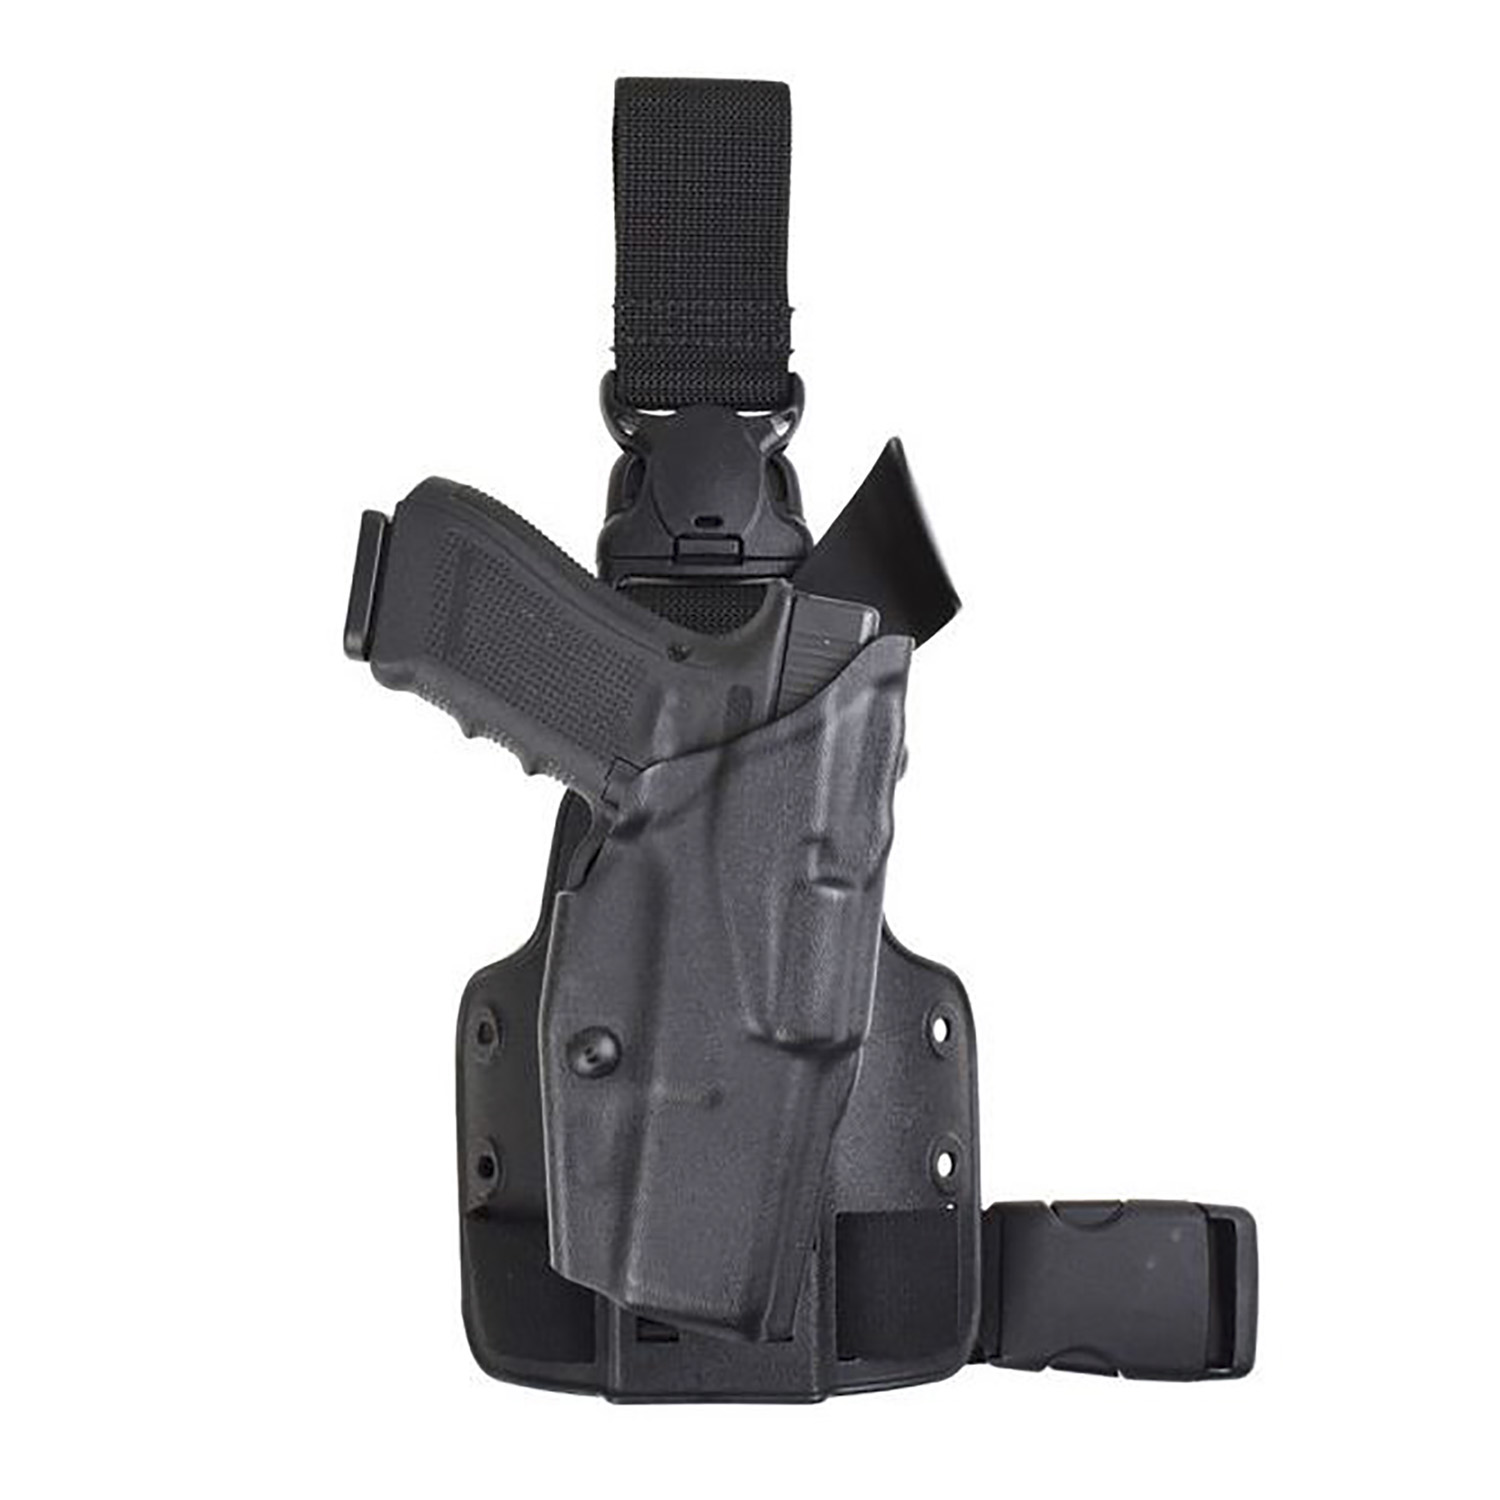 b2b1809601b865 Safariland 6355 ALS Tactical Holster with Quick-Release Leg